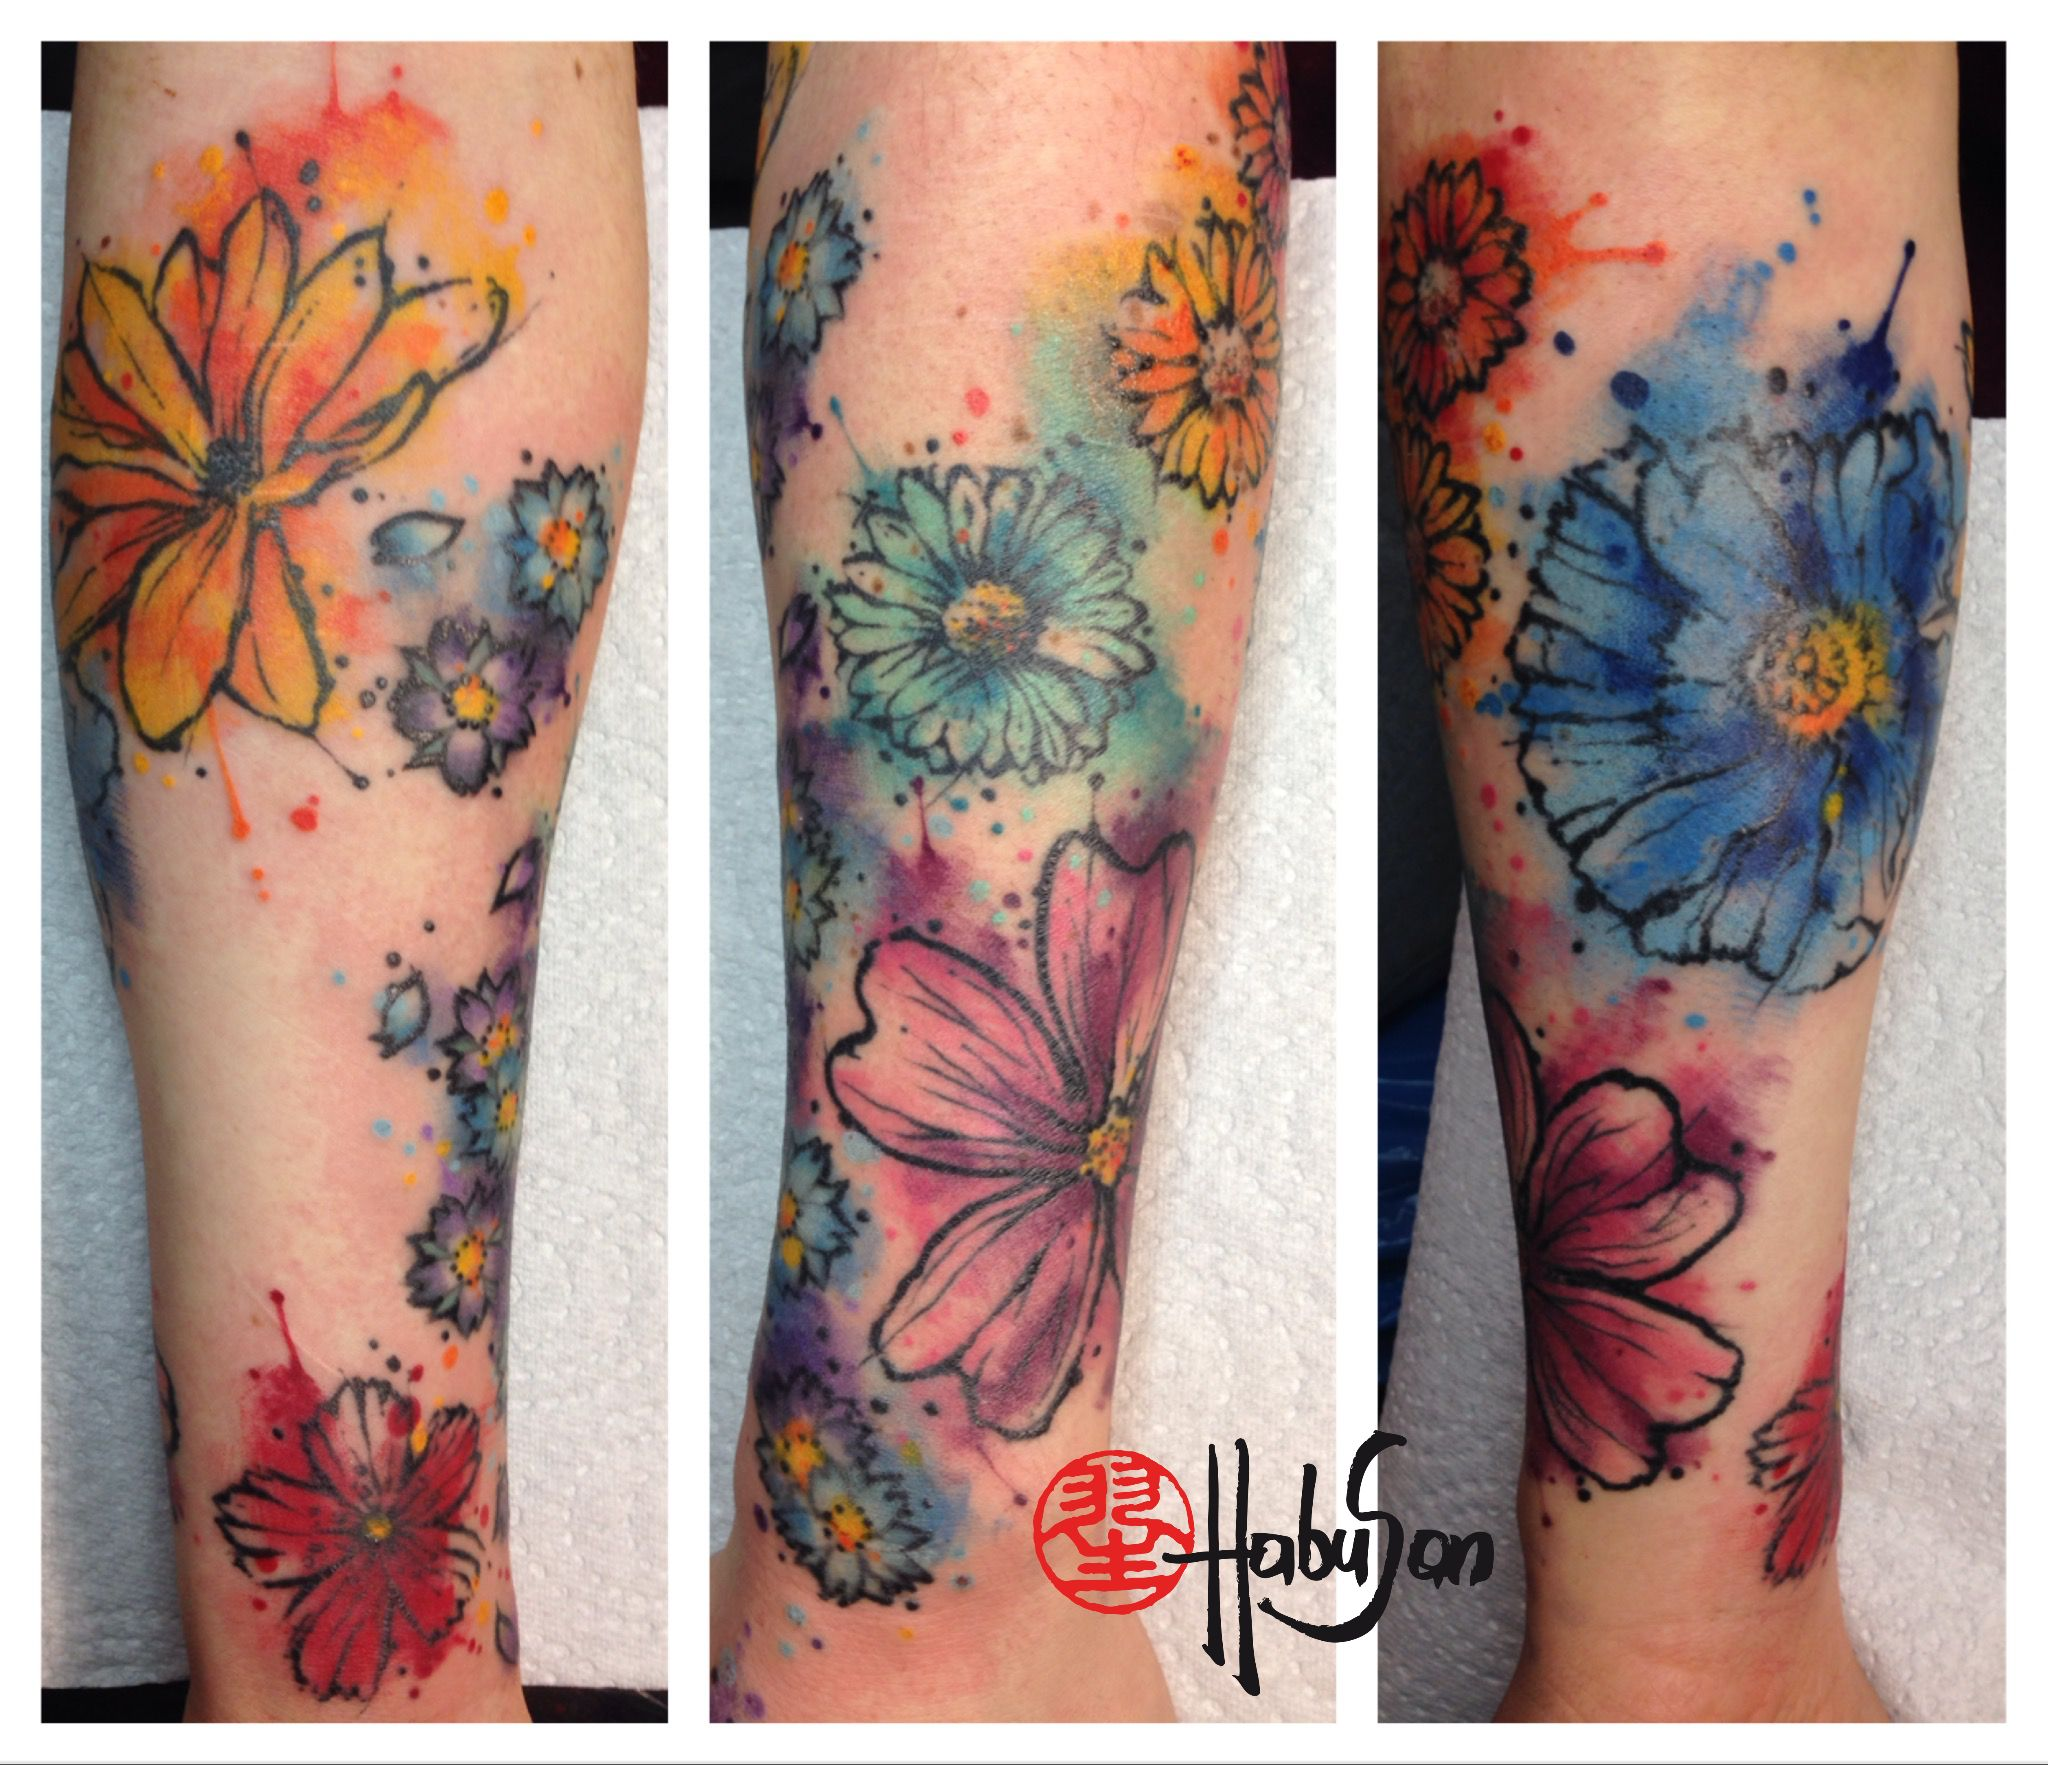 blumenslewce work in progress danke liebe julia tattoo habusan wien watercolour tattoos. Black Bedroom Furniture Sets. Home Design Ideas